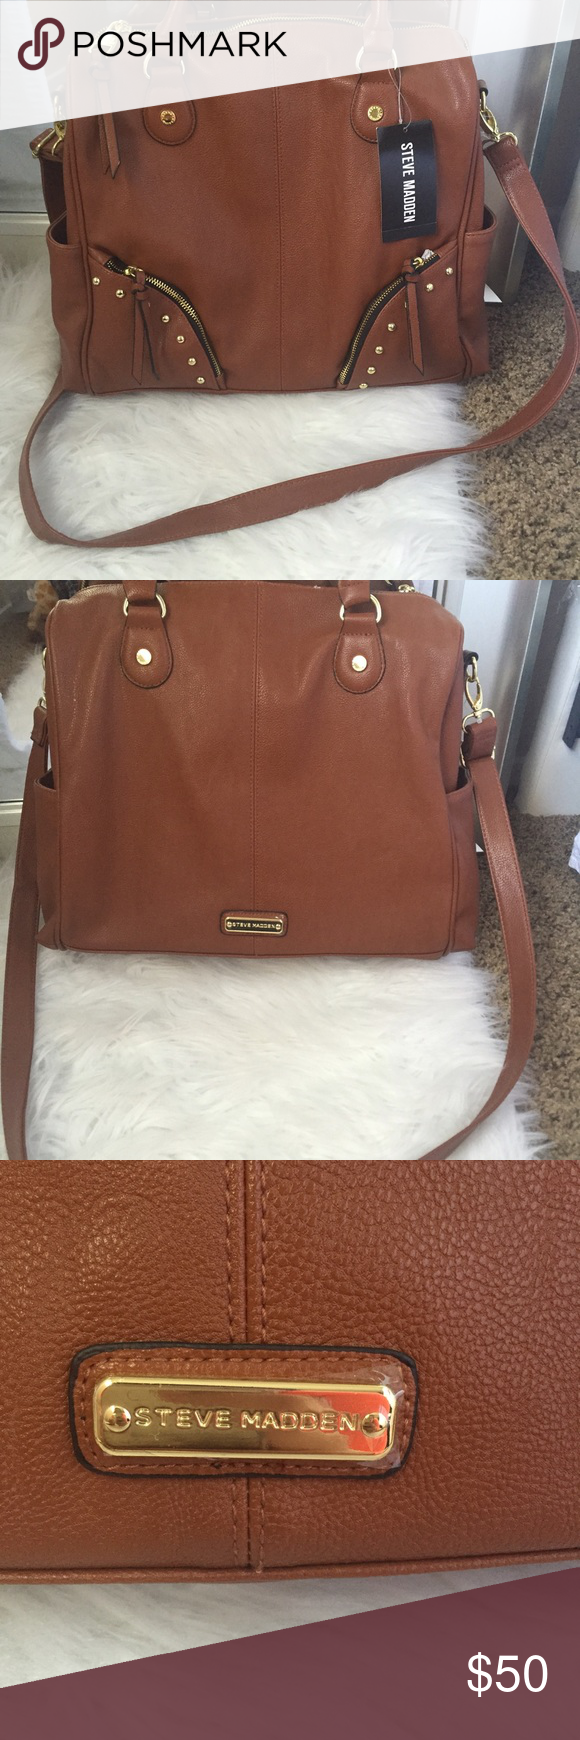 Brand New Purse It Has A Removable Shoulder Strap So You Can Wear However Want Price Is Firm Steve Madden Bags